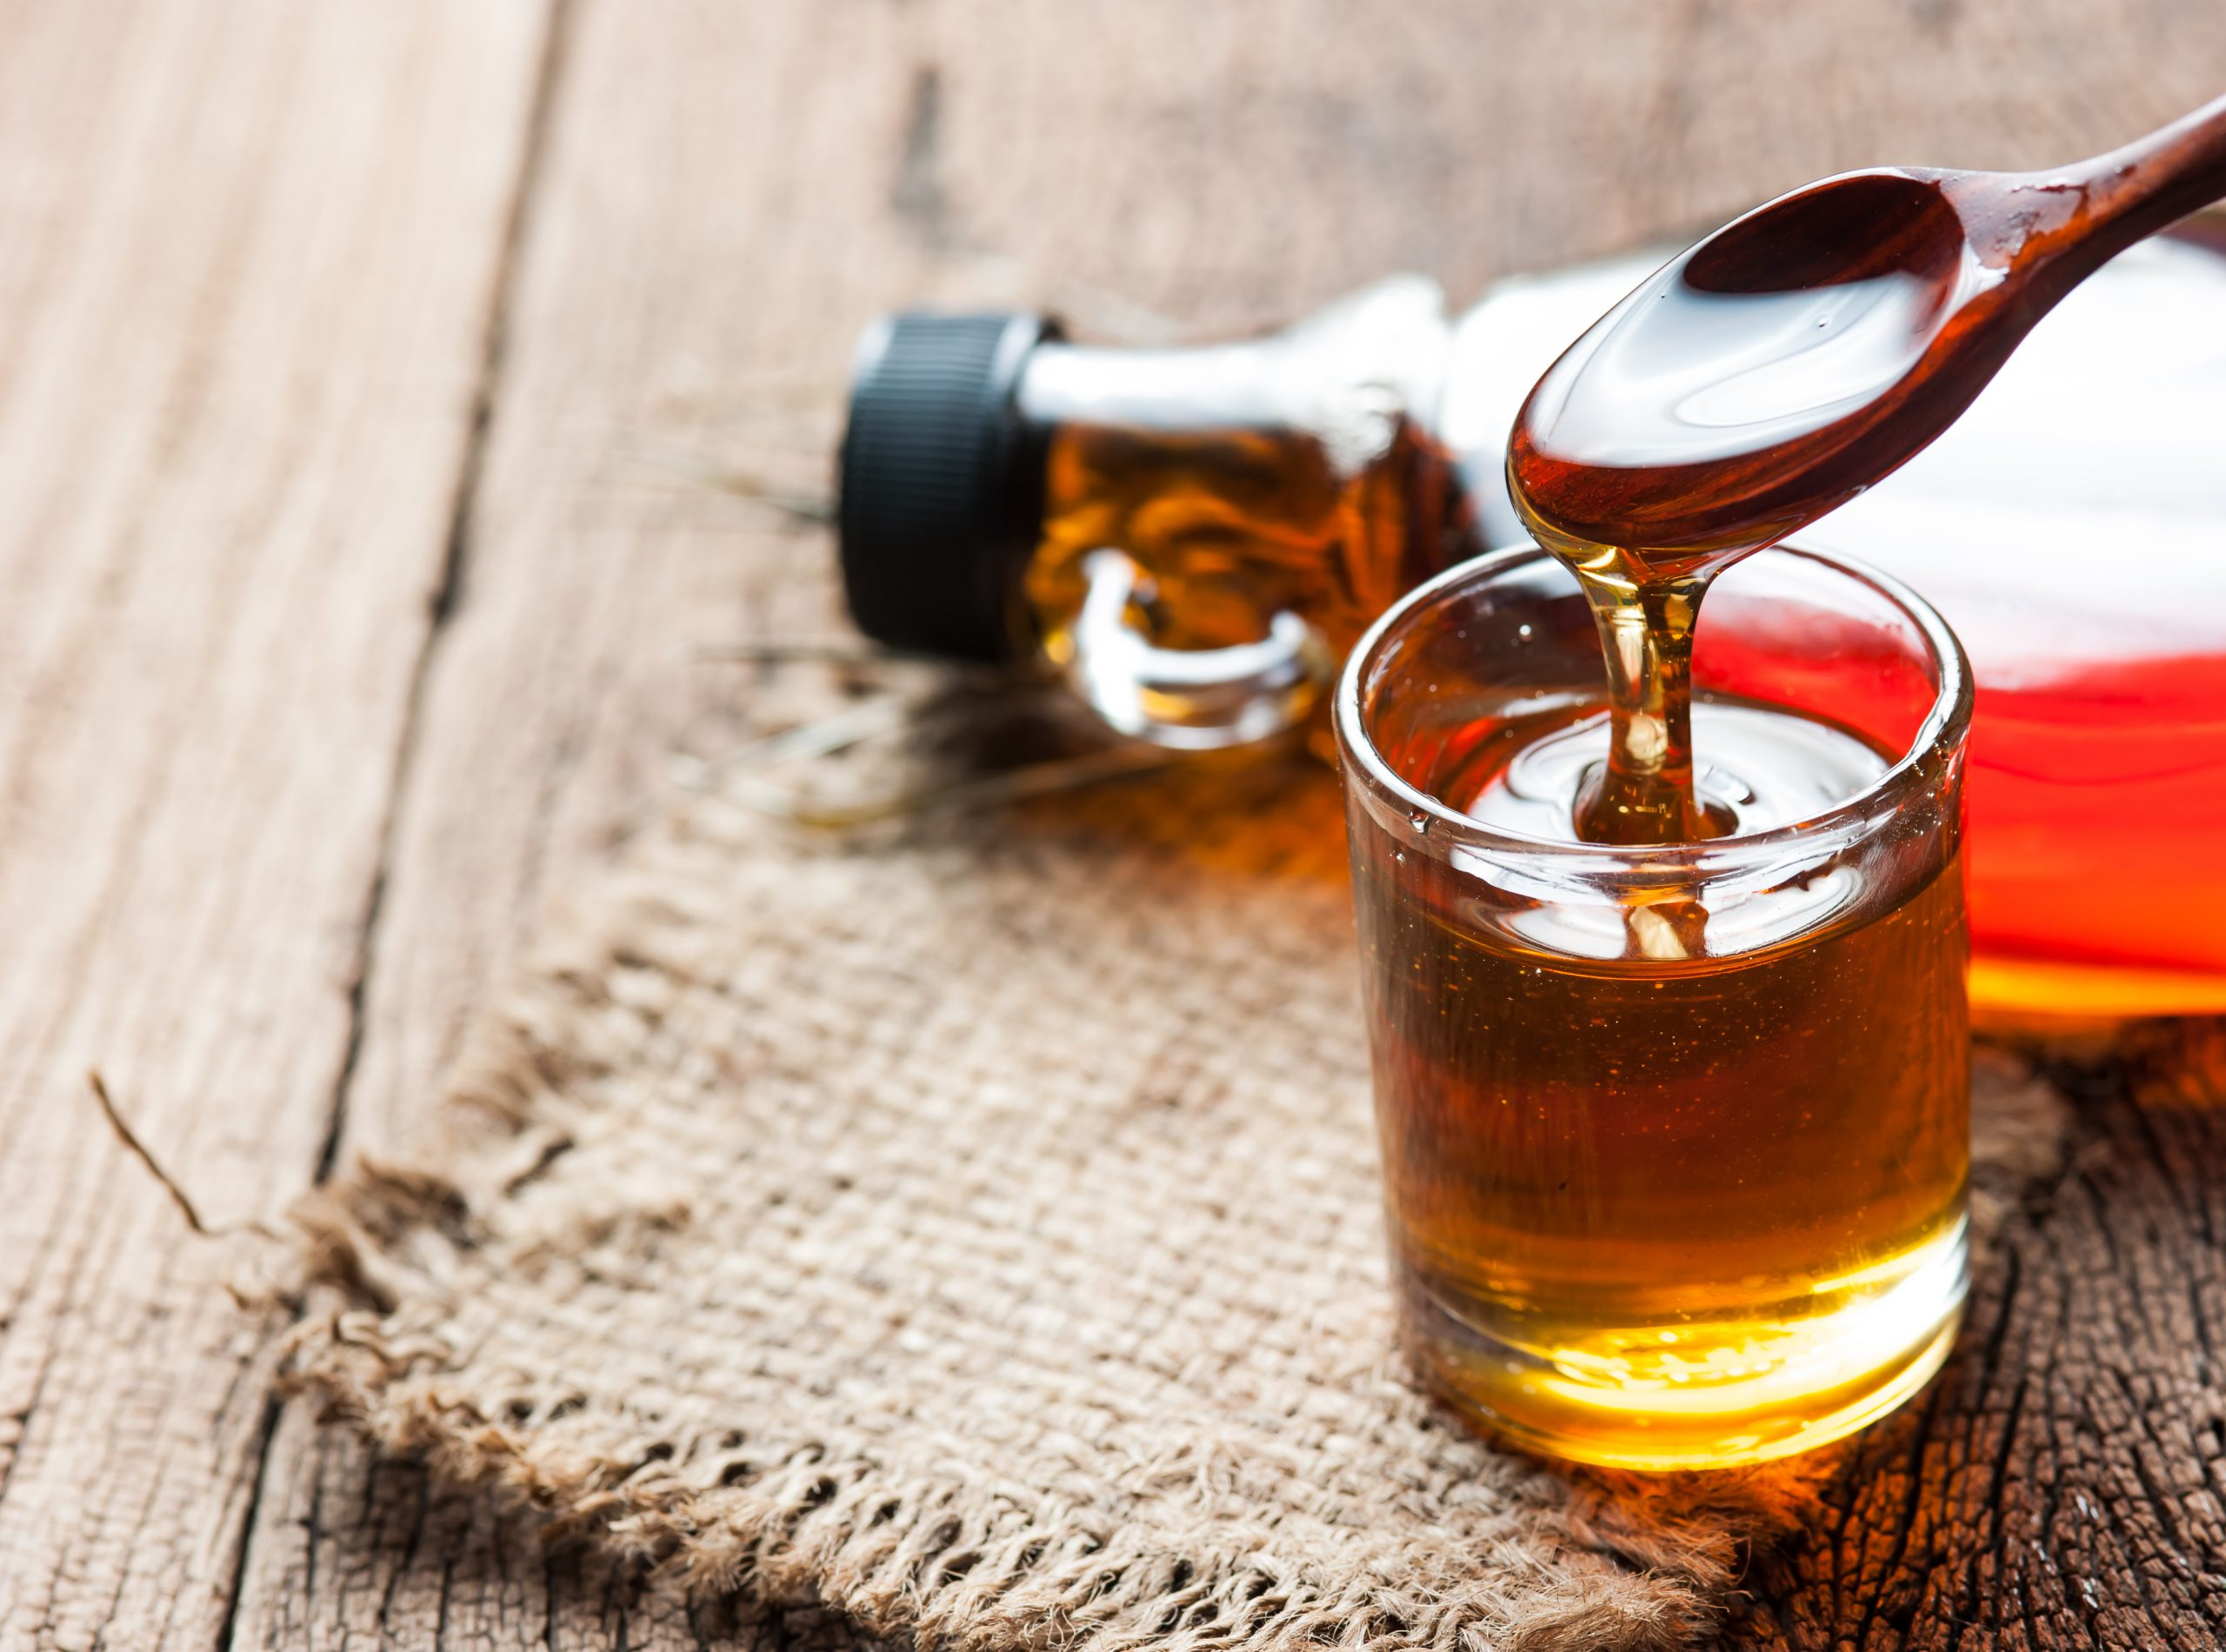 Honey beats medications at treating cough and upper respiratory tract infections